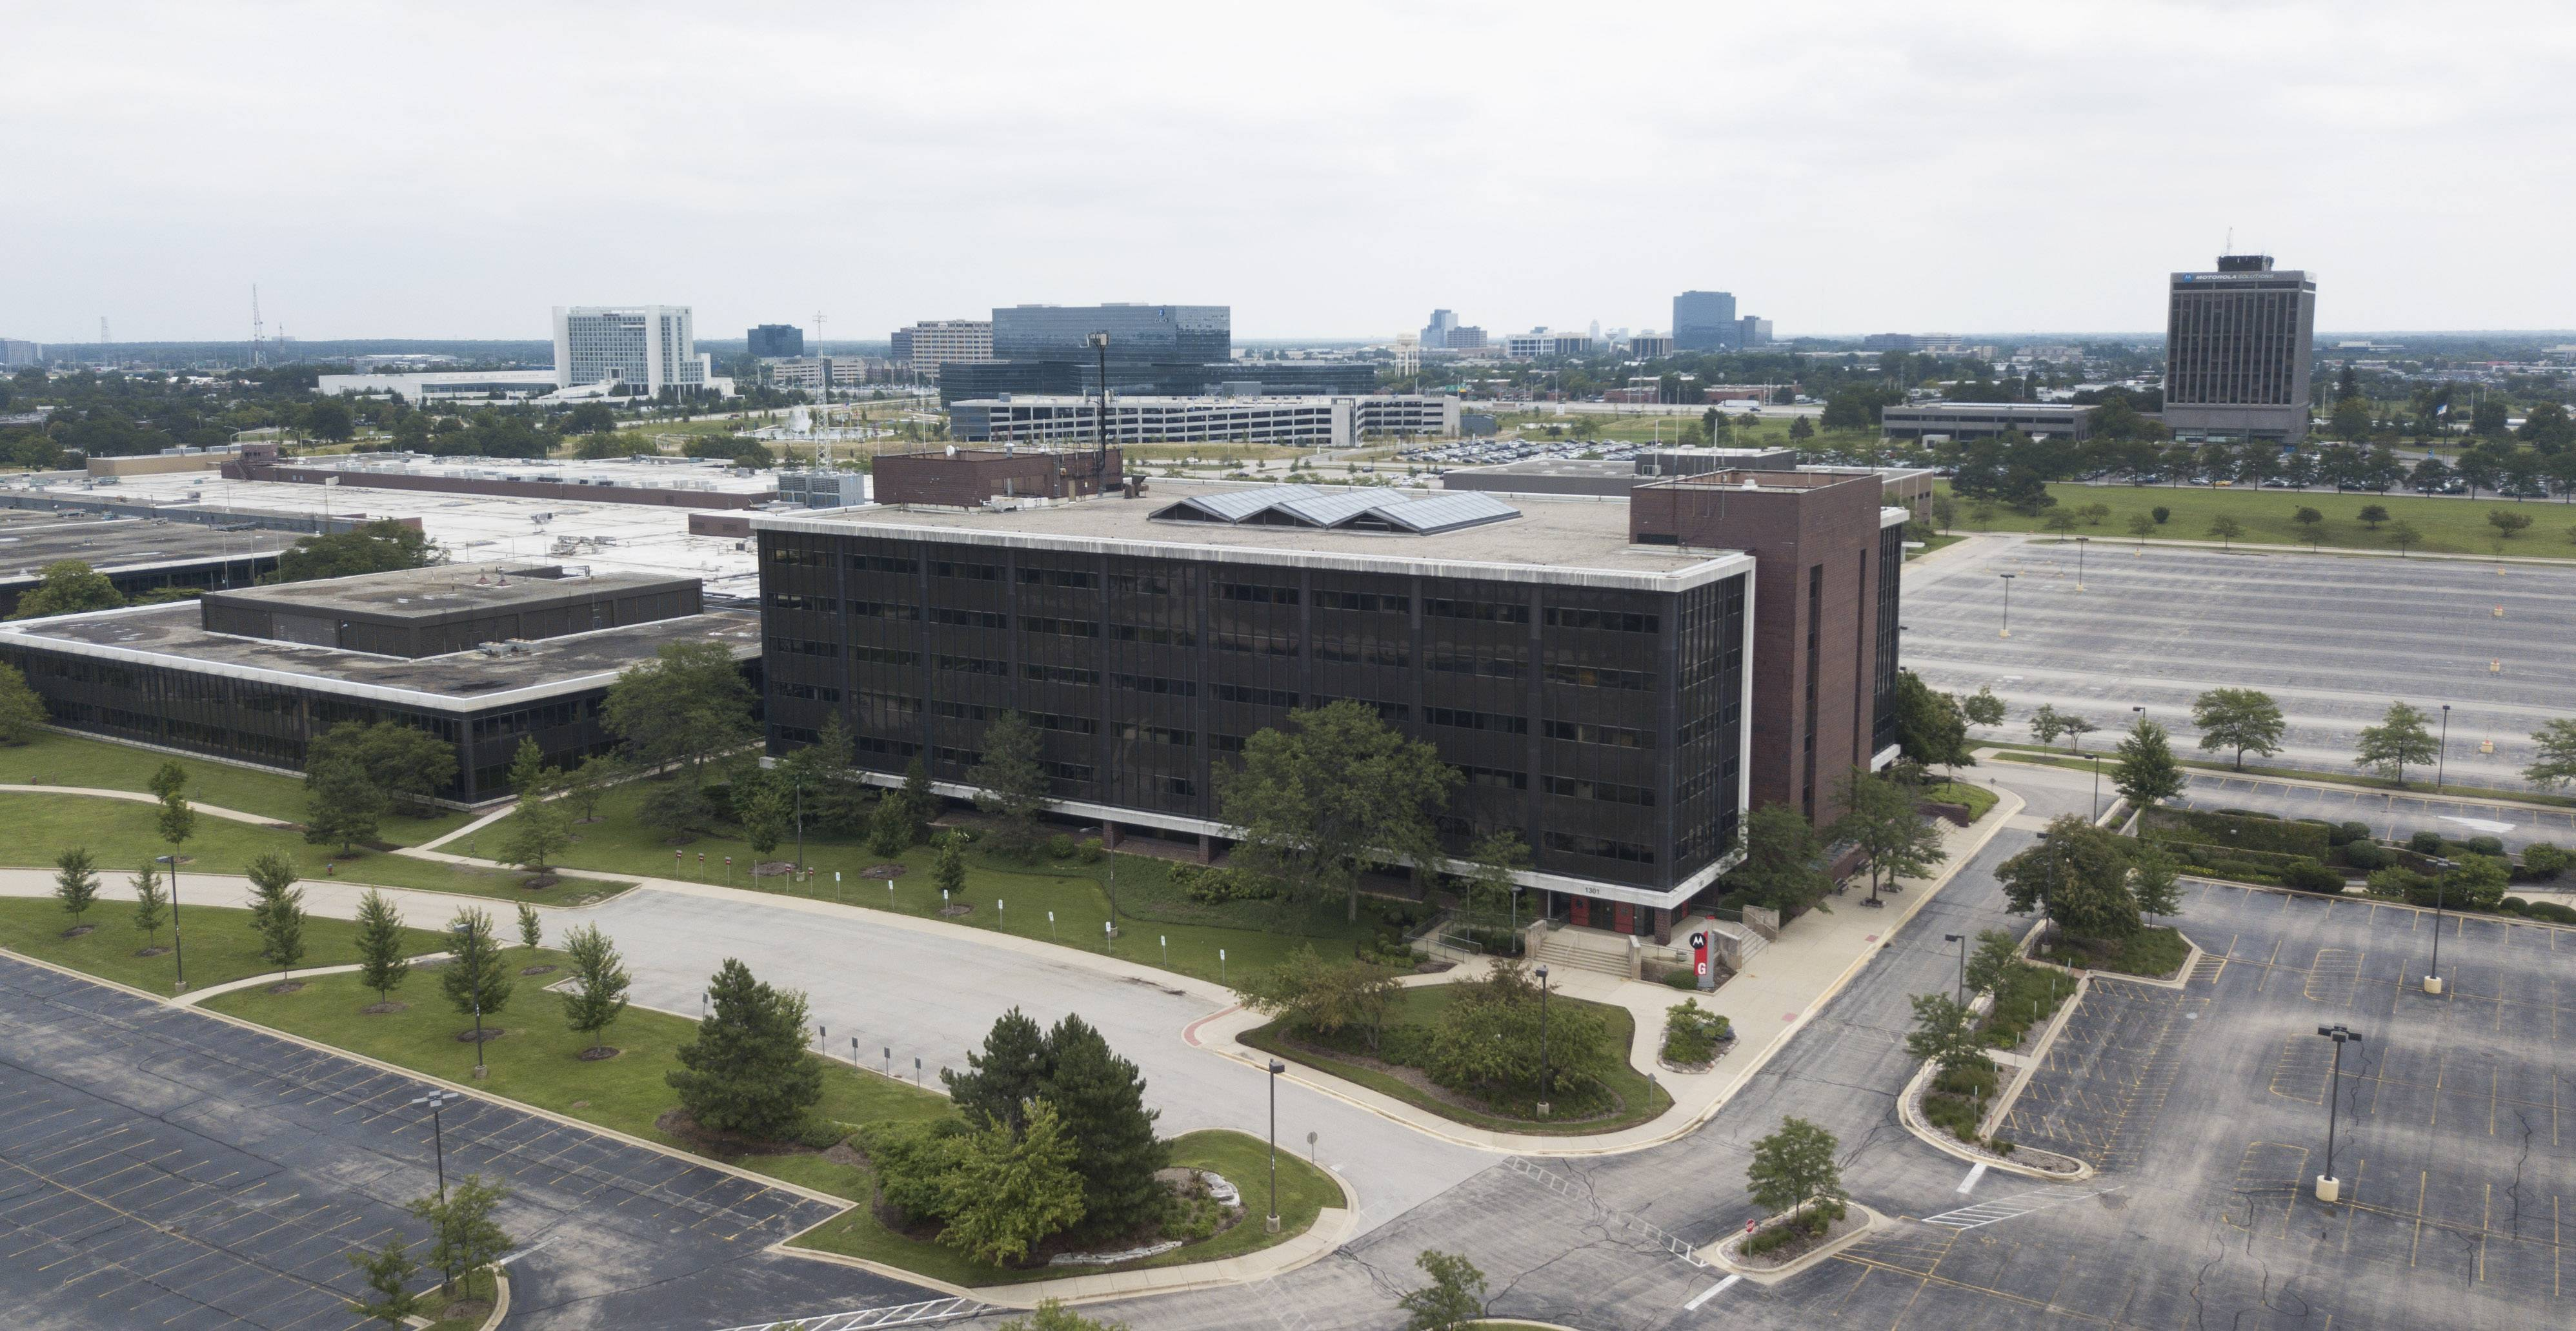 Schaumburg trustees Tuesday expressed support for the direction of plans to redevelop the former Motorola Solutions campus at Algonquin and Meacham roads.